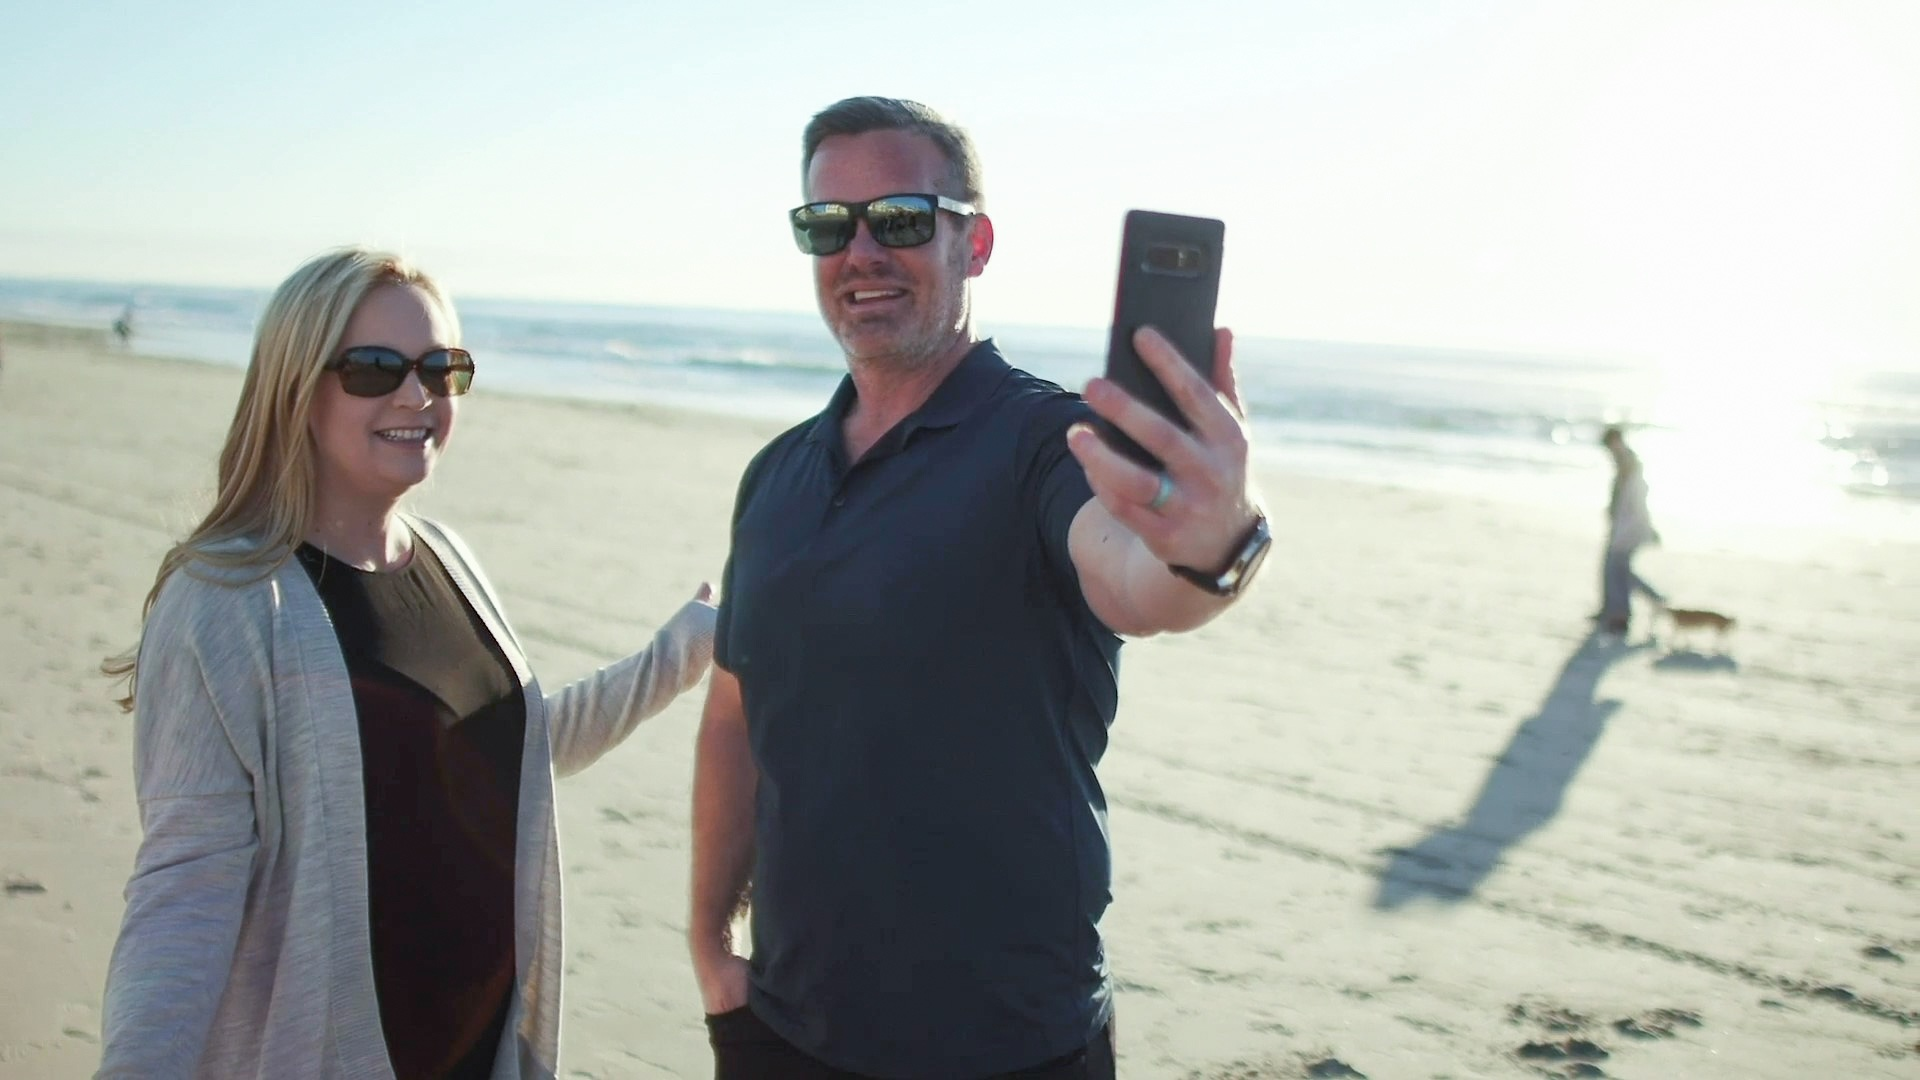 Pete and Heather Reese make a live video on the beach